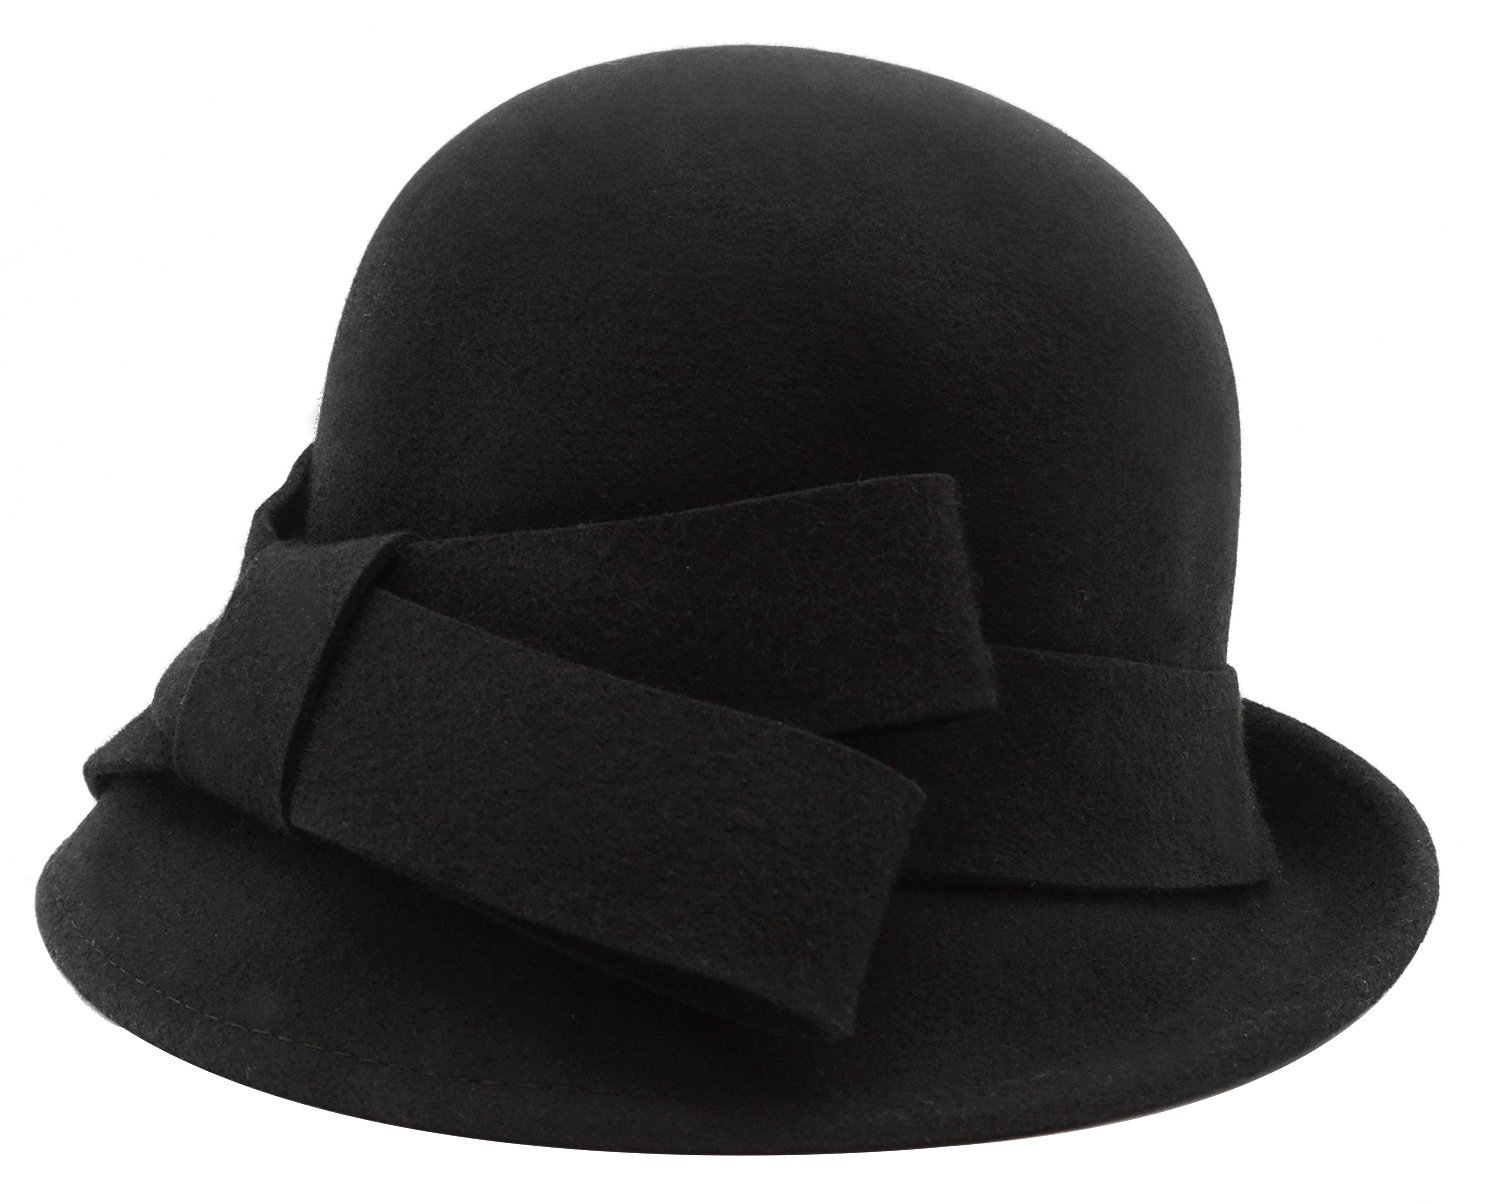 Bellady Women Solid Color Winter Hat 100 percent Wool Cloche Bucket with Bow Accent,Black, One Size